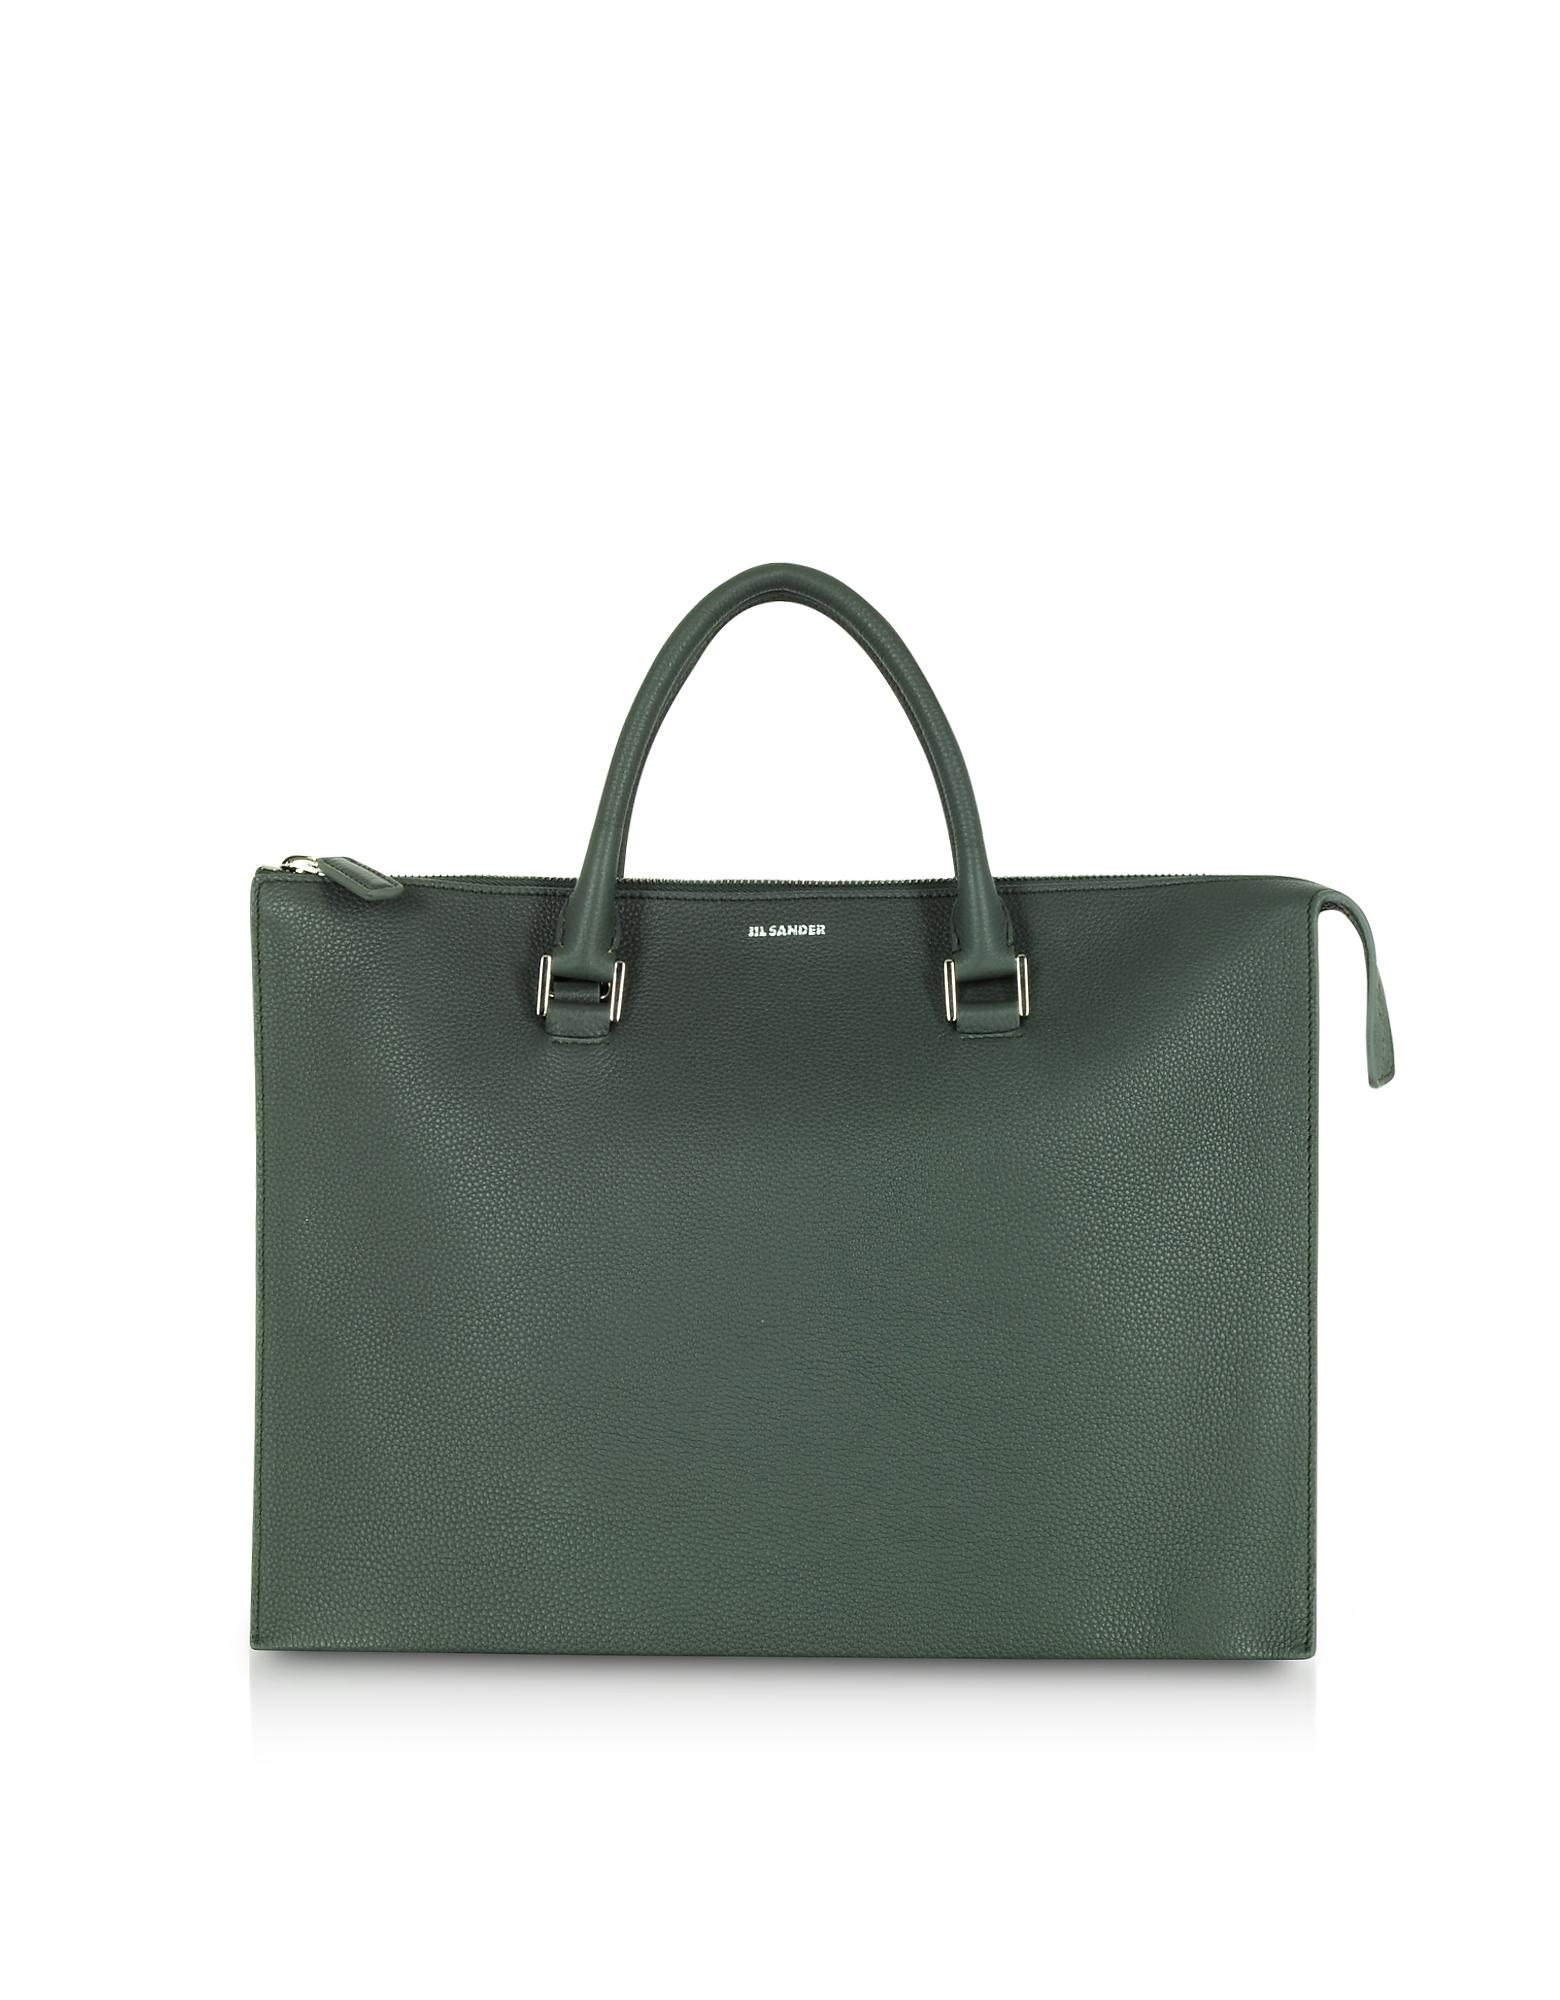 67f5c6f7c68 Jil Sander Tootie Knitted Leather Tote Bag in Green - Lyst